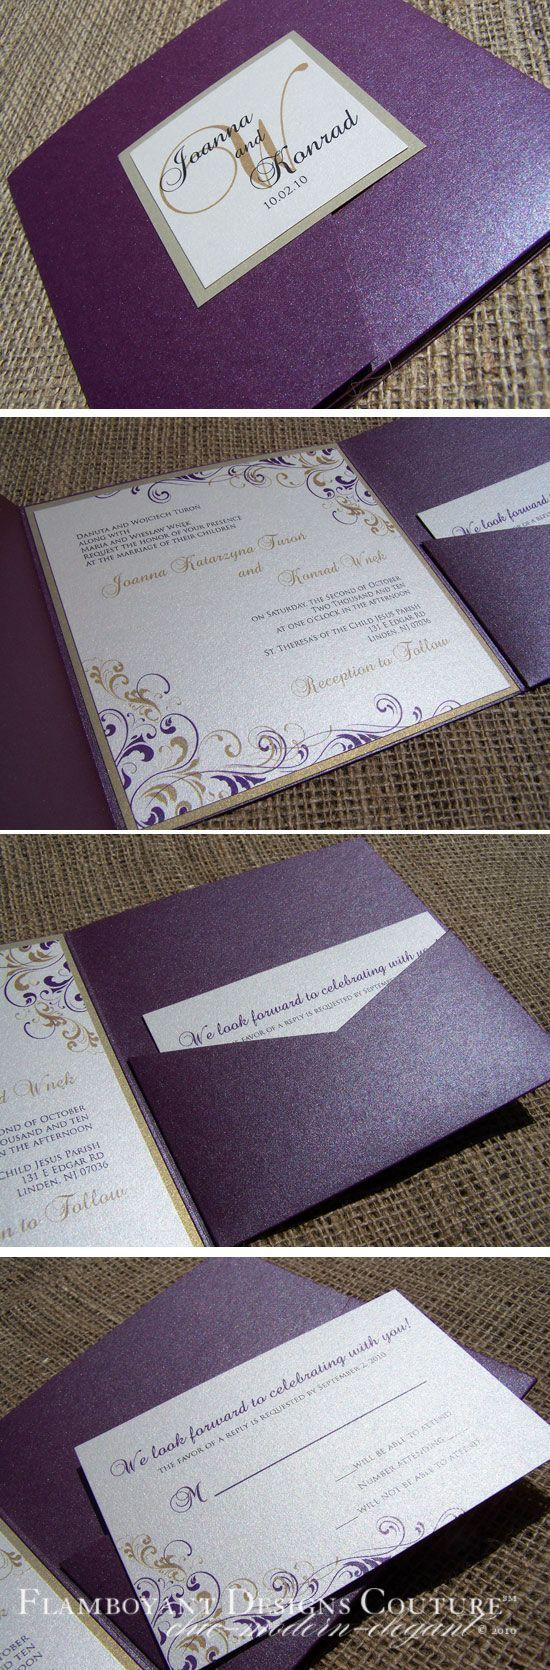 casual evening wedding invitation wording%0A Plum and Gold Pocket Fold Invitations  The Wedding Chicks I need to find  who makes